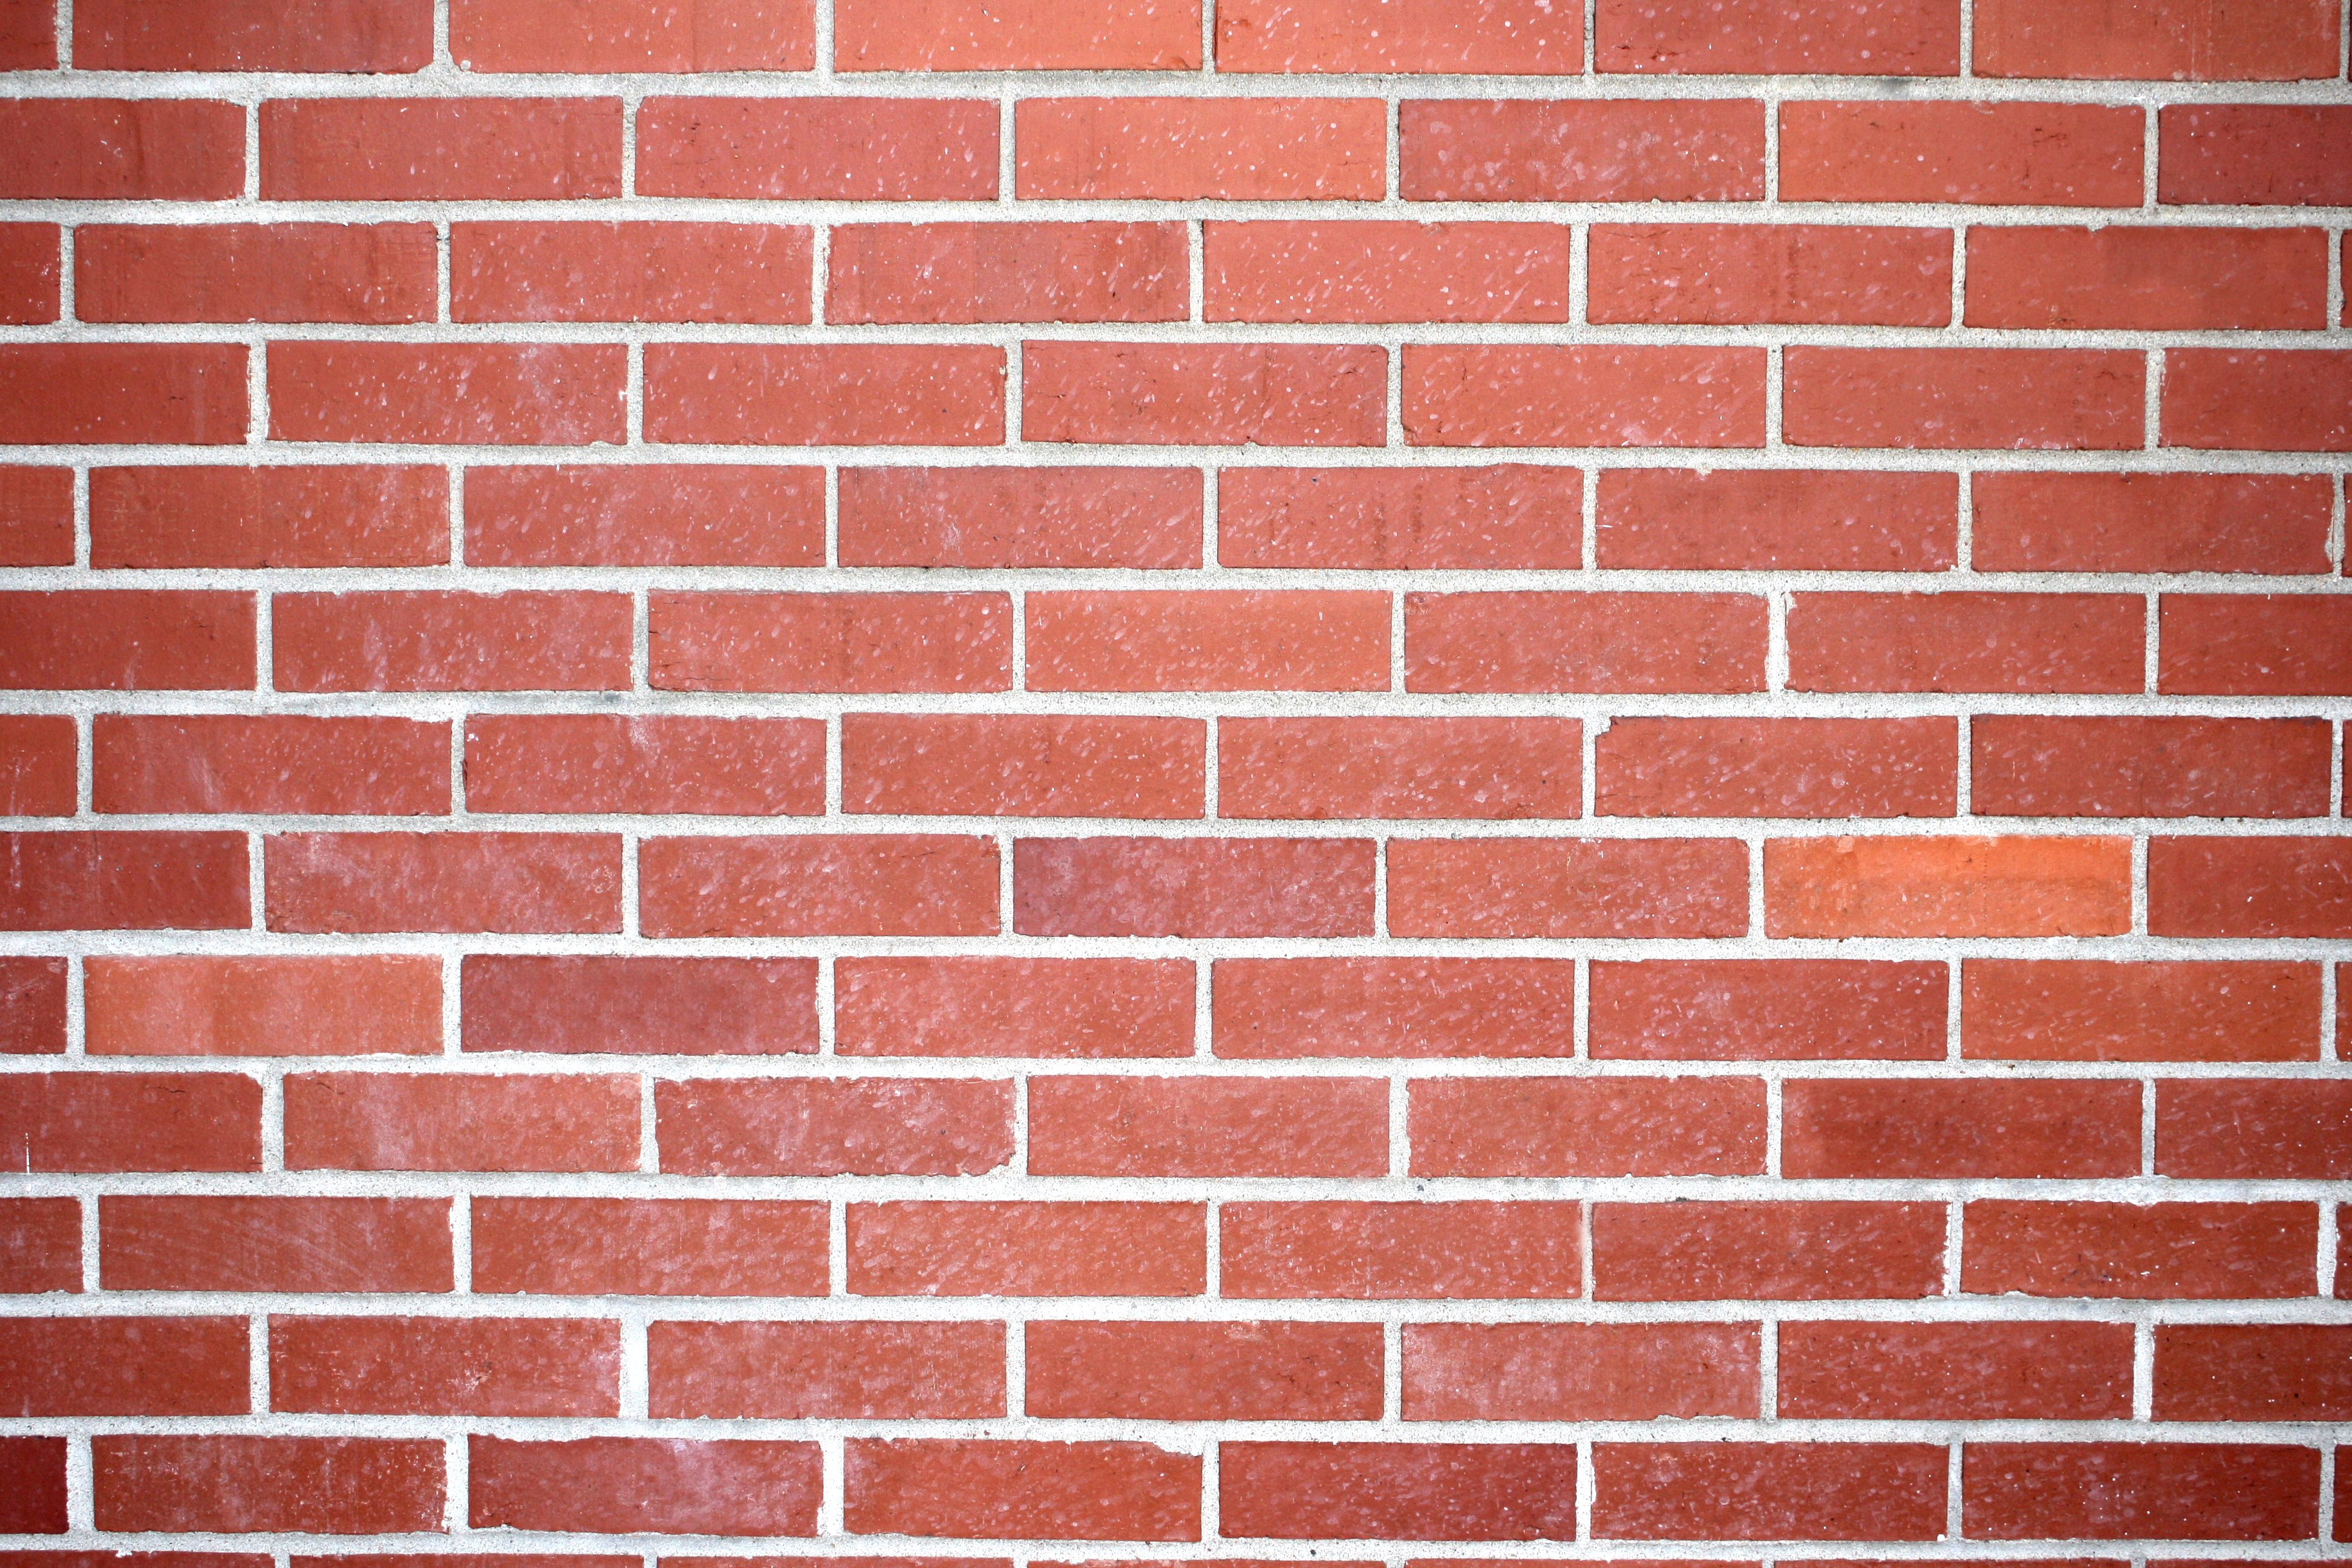 Red brick background clipart banner freeuse library Free Brick Wall Cliparts, Download Free Clip Art, Free Clip Art on ... banner freeuse library